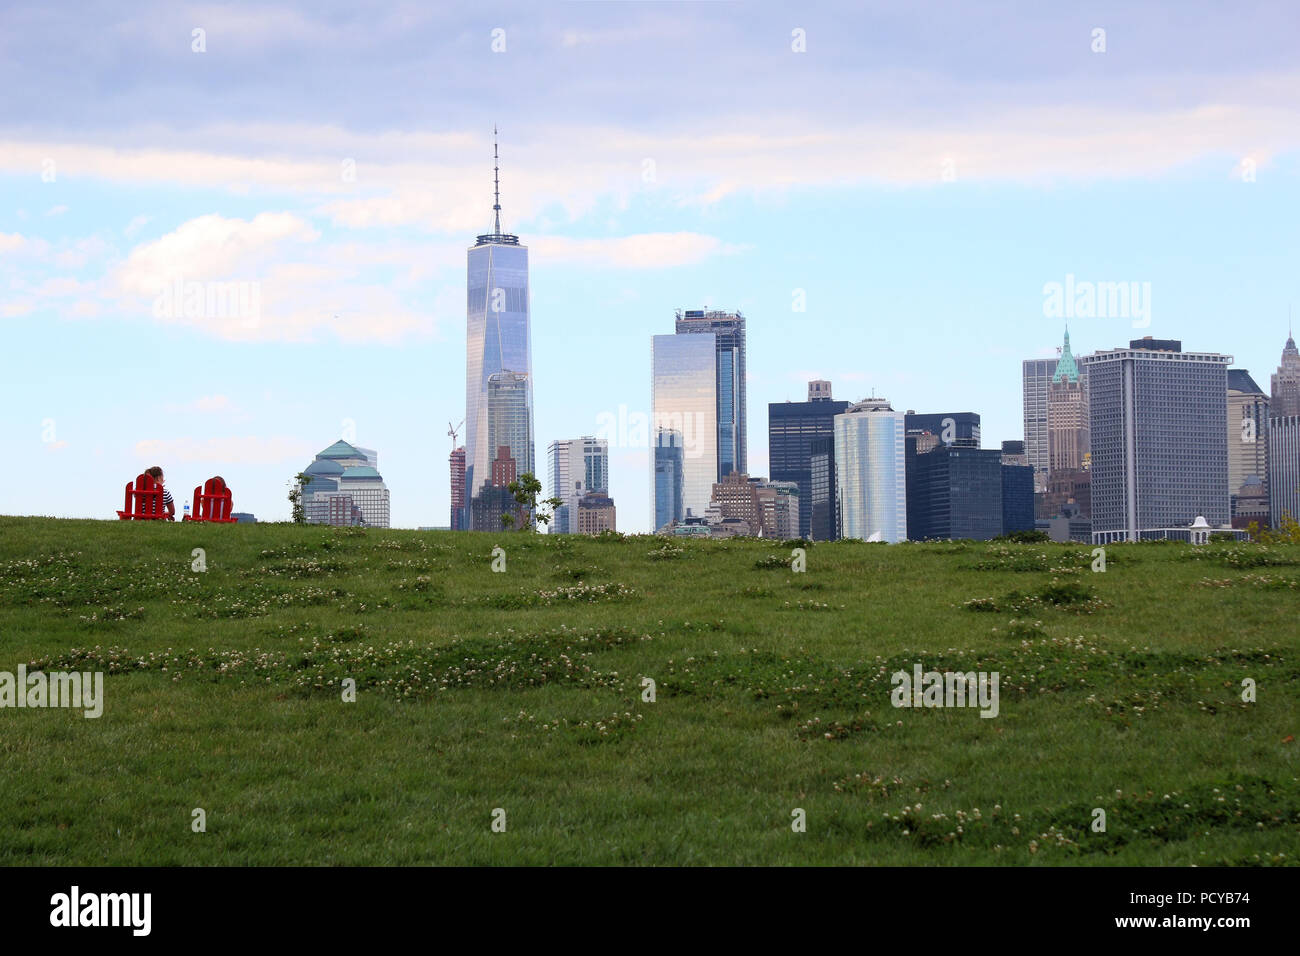 Couple sitting on two red garden chairs on Governors Island Hills watching Financial District skyline, Governors Island on JULY 4th, 2017 in New York, Stock Photo